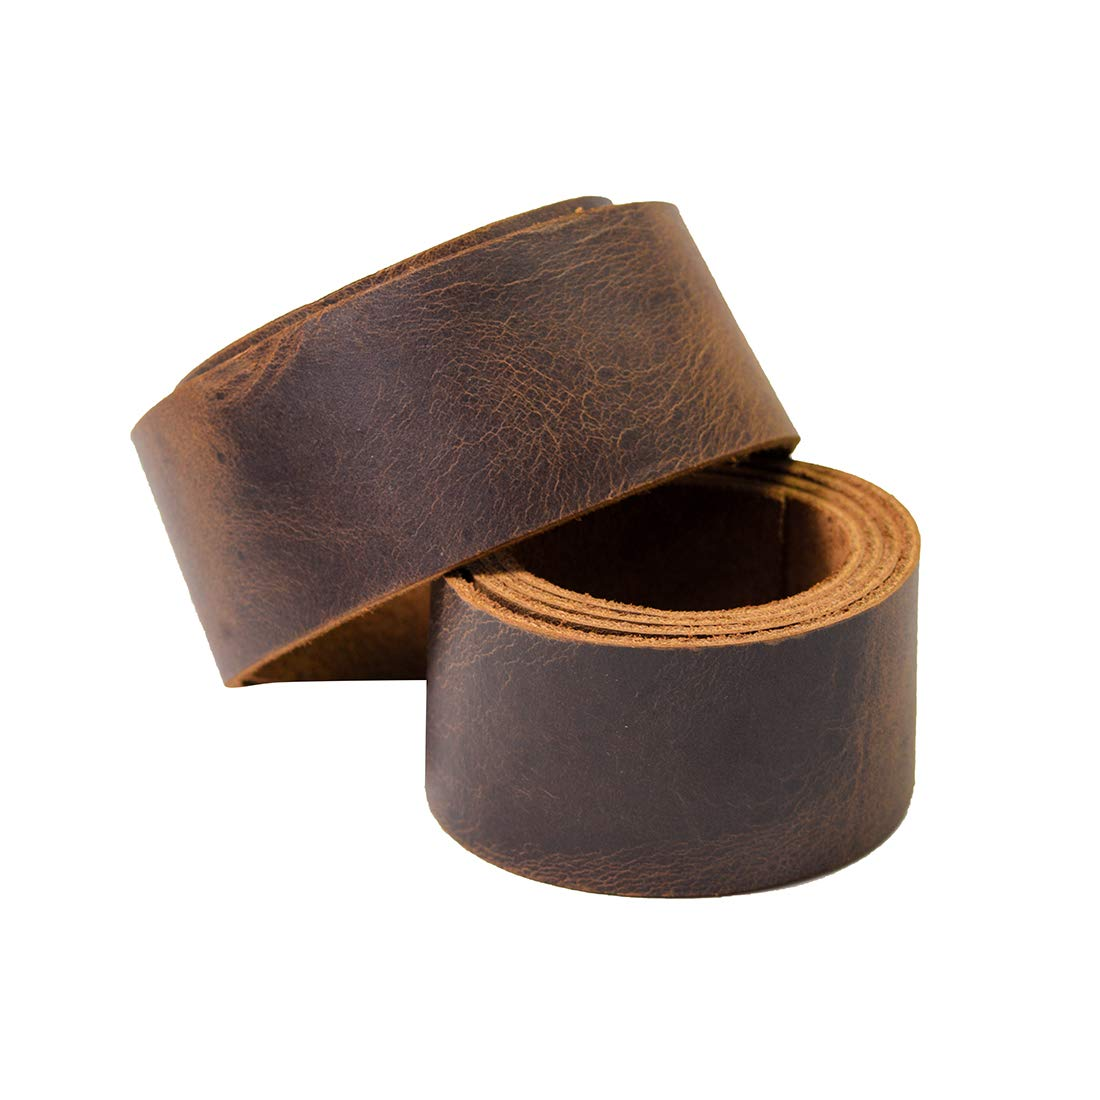 Hide & Drink, Leather Strong Strap (1.5 in.) Wide, Cord Braiding String, Medium Weight (1.8mm Thick) (48 in.) Long for Crafts/Tooling/Workshop :: Bourbon Brown